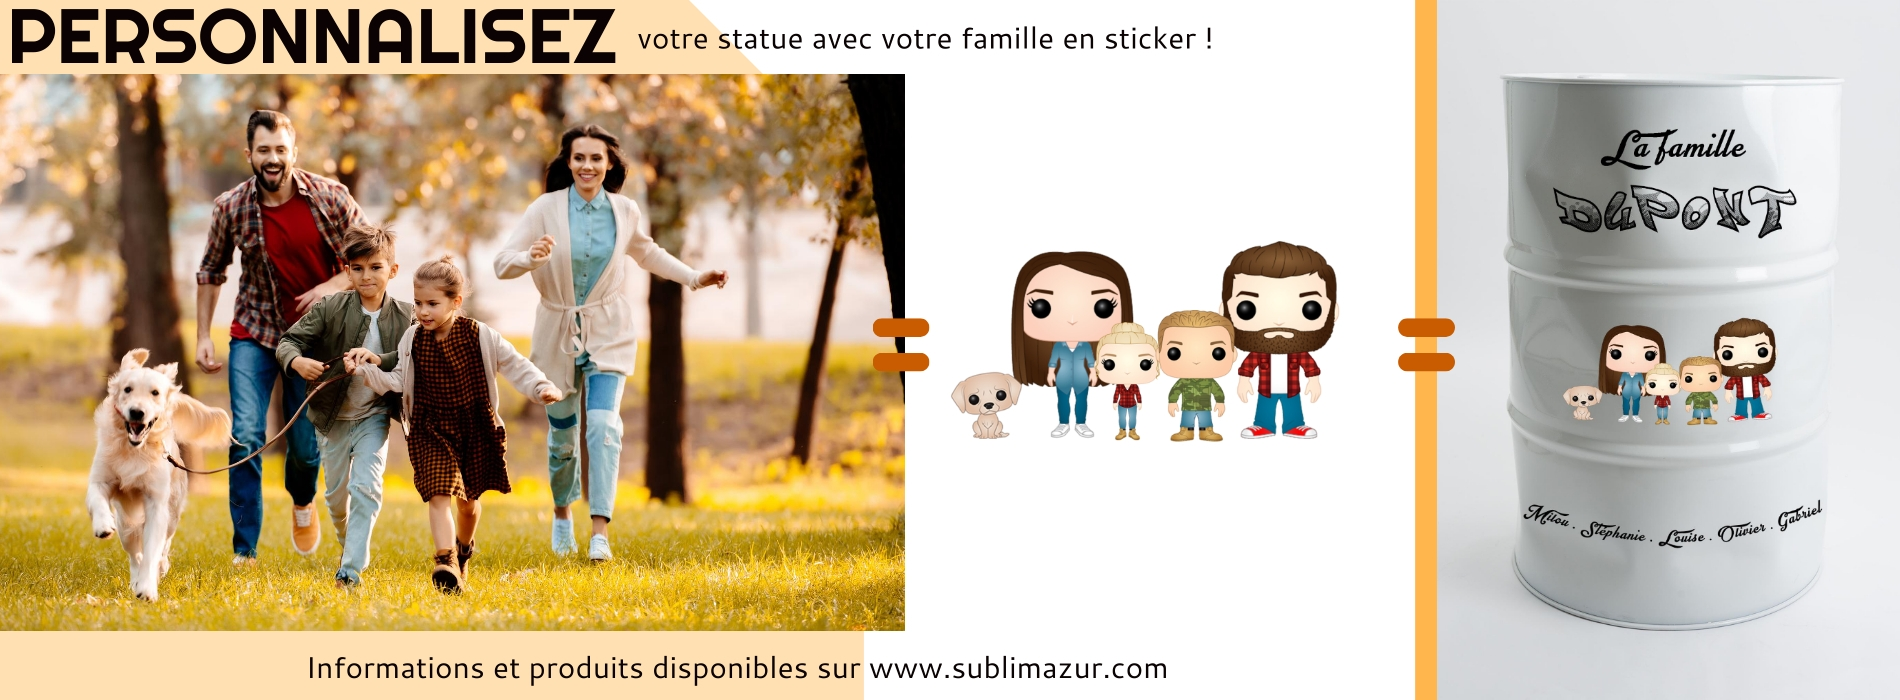 personnalisation famille